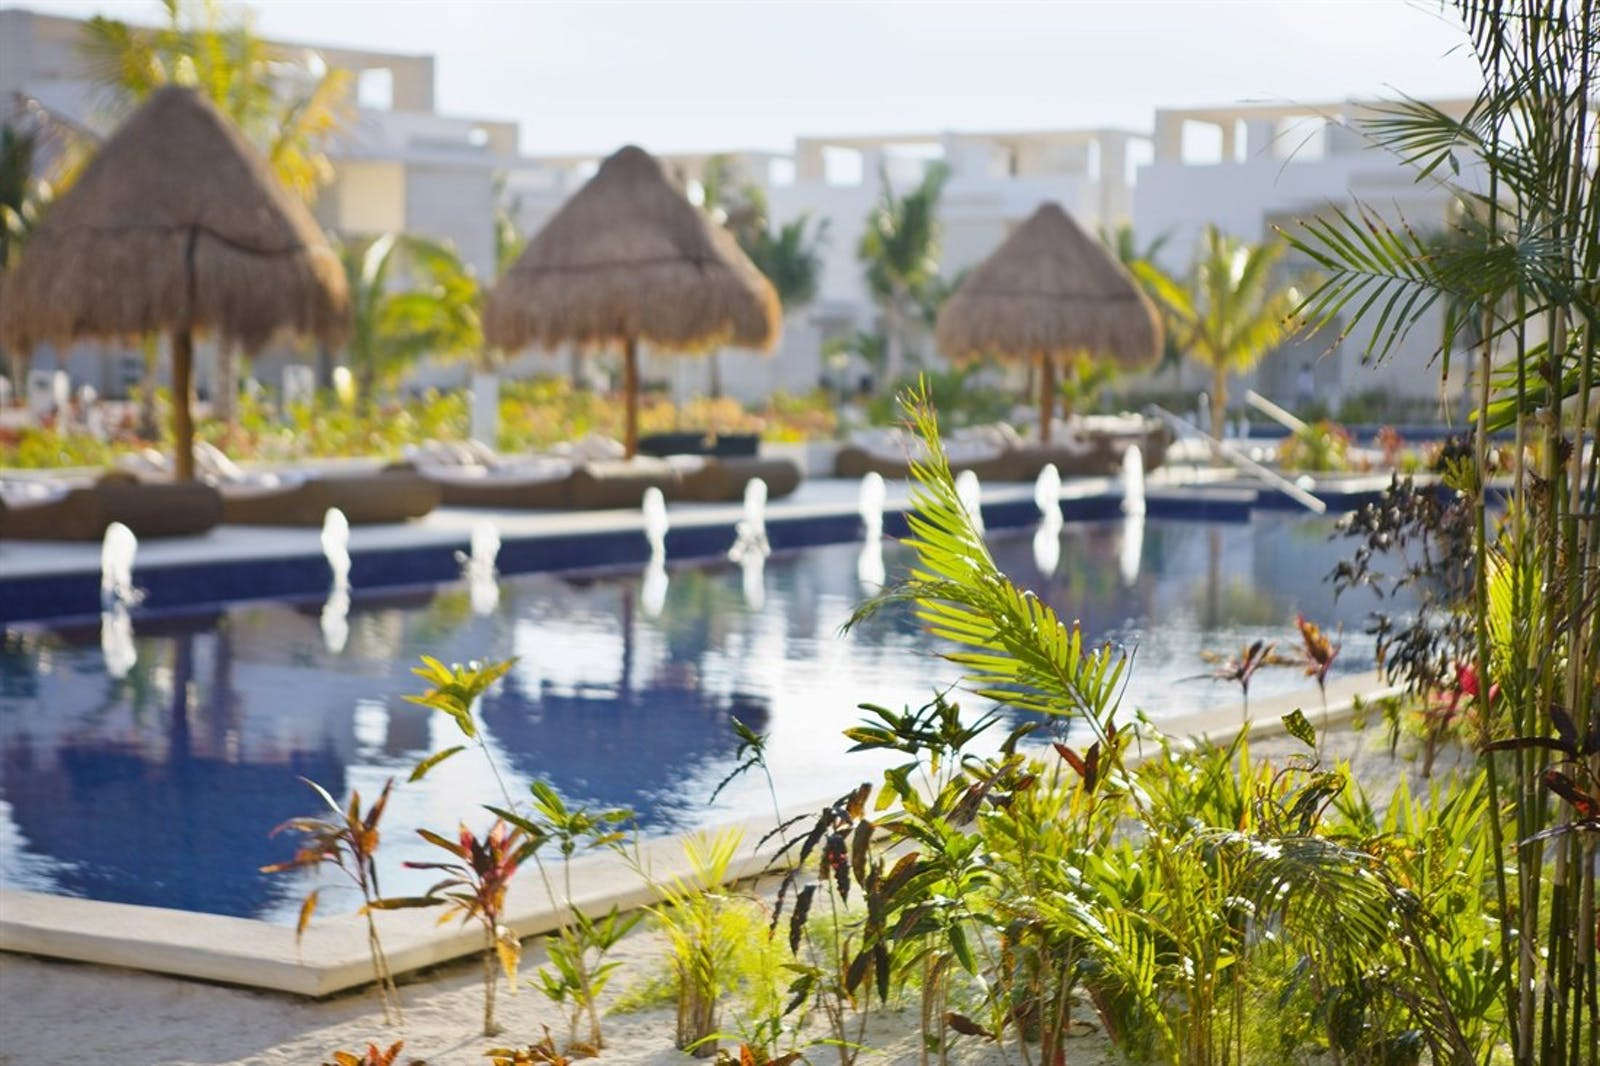 Pool And Gardens at The Beloved Hotel, Riviera Maya, Mexico